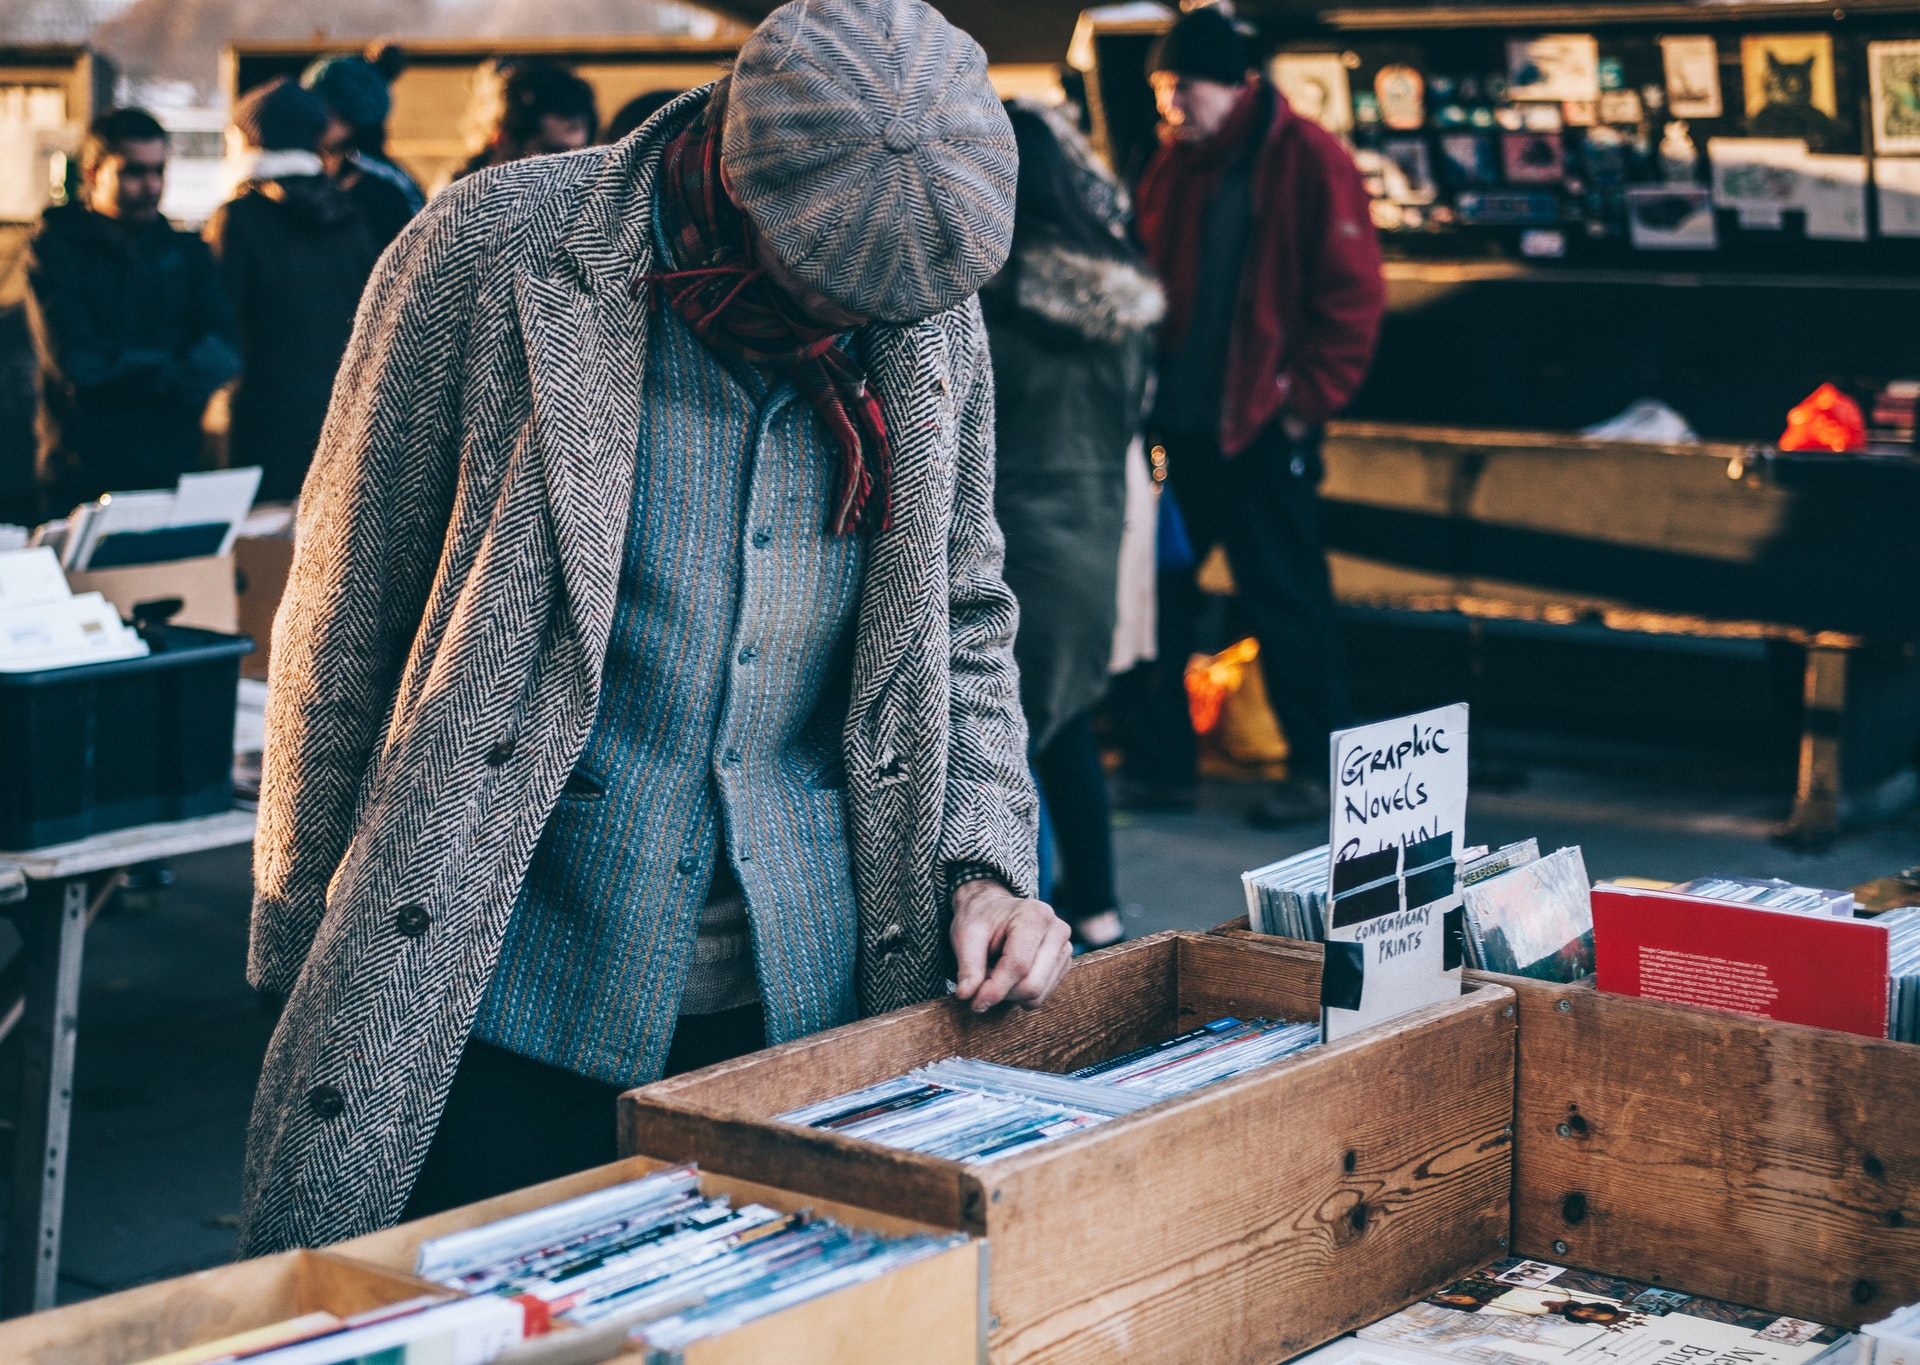 Photograph of a man browsing books in an outdoor market